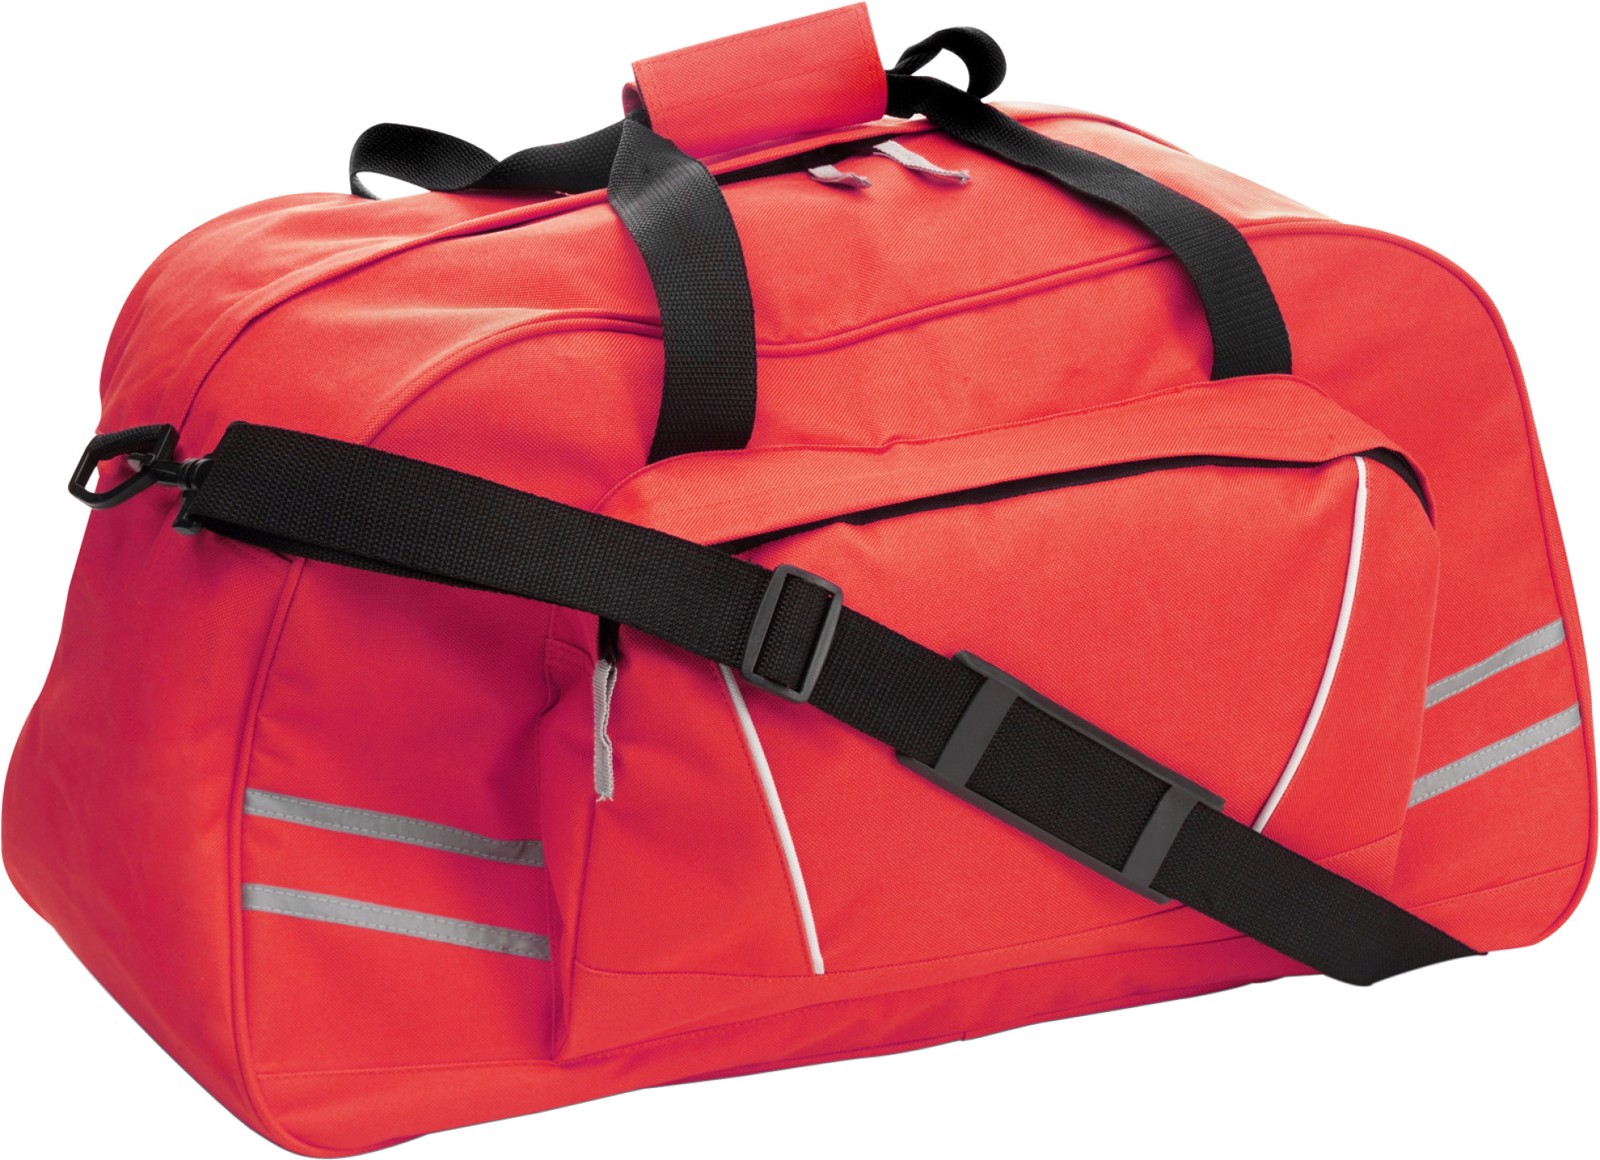 Polyester (600D) sports bag - Red